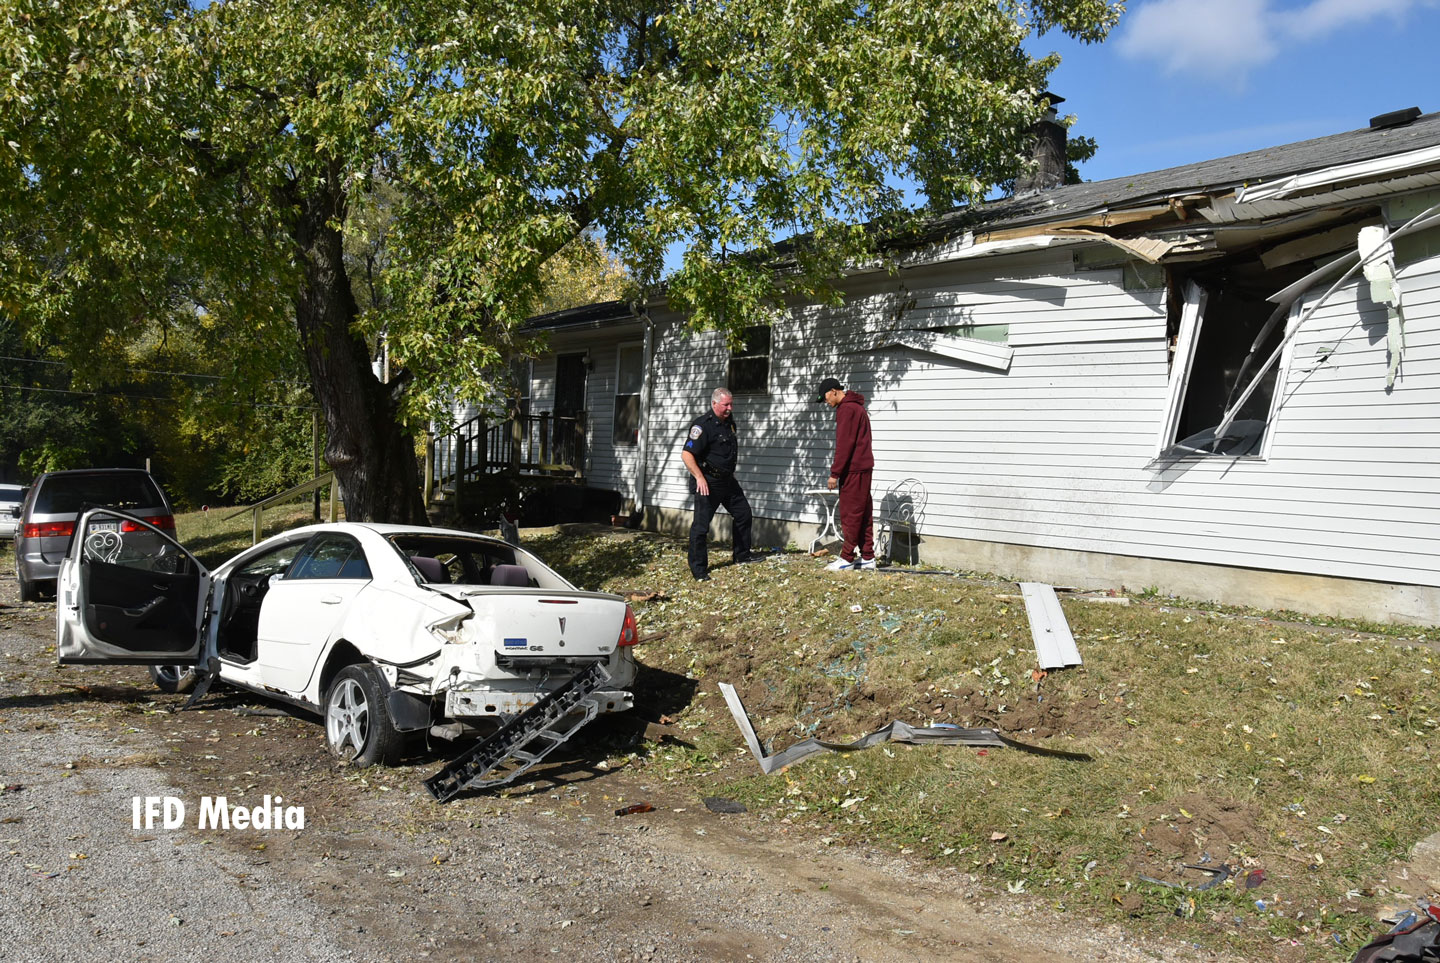 Damage to the car and dwelling